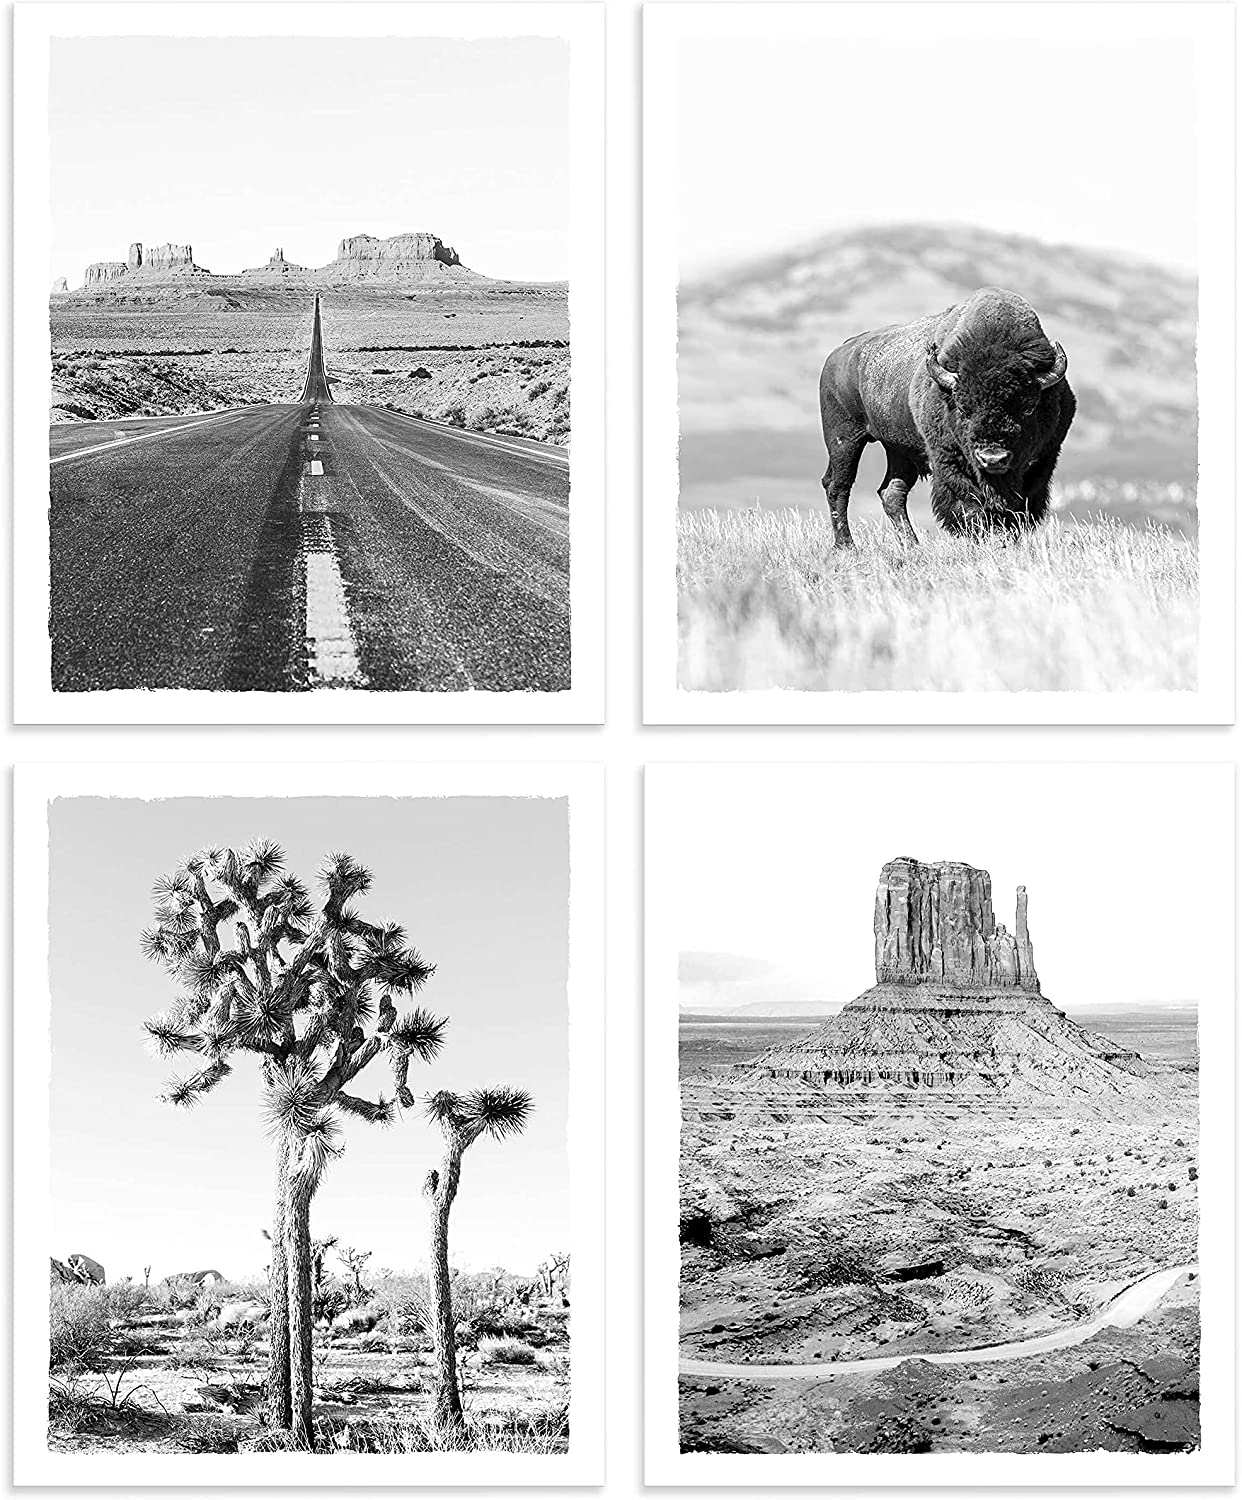 Desert Landscape Prints Wall Art UNFRAMED American Buffalo Pictures Tree Highway Monument Valley Black and White Photograph for Home Wall Decor 8x10 Inches Set of 4